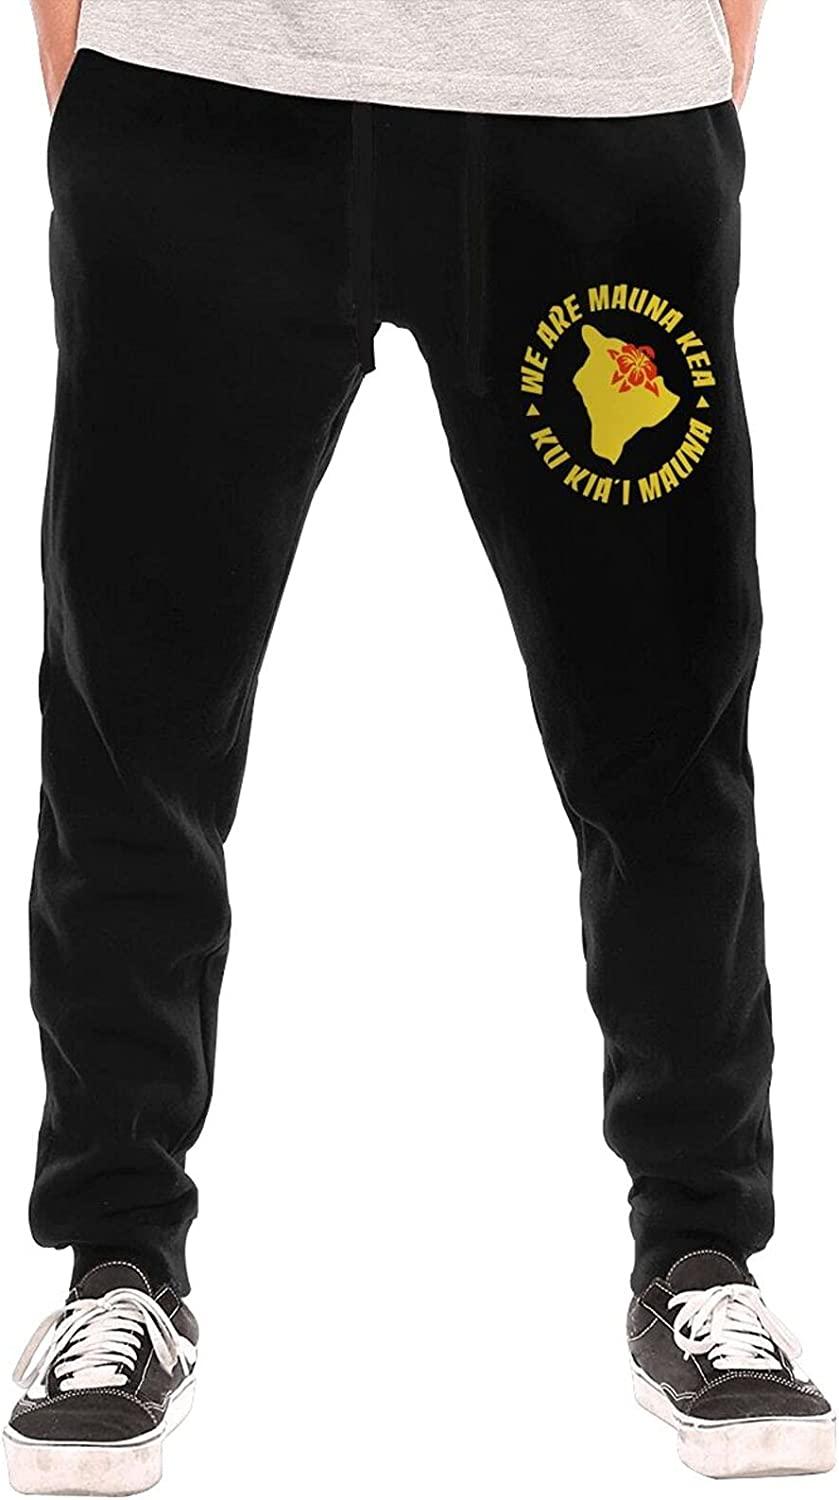 All stores are sold We are Mauna Kea Ku Kiai Pants Sweatpants Under blast sales Men Casual for